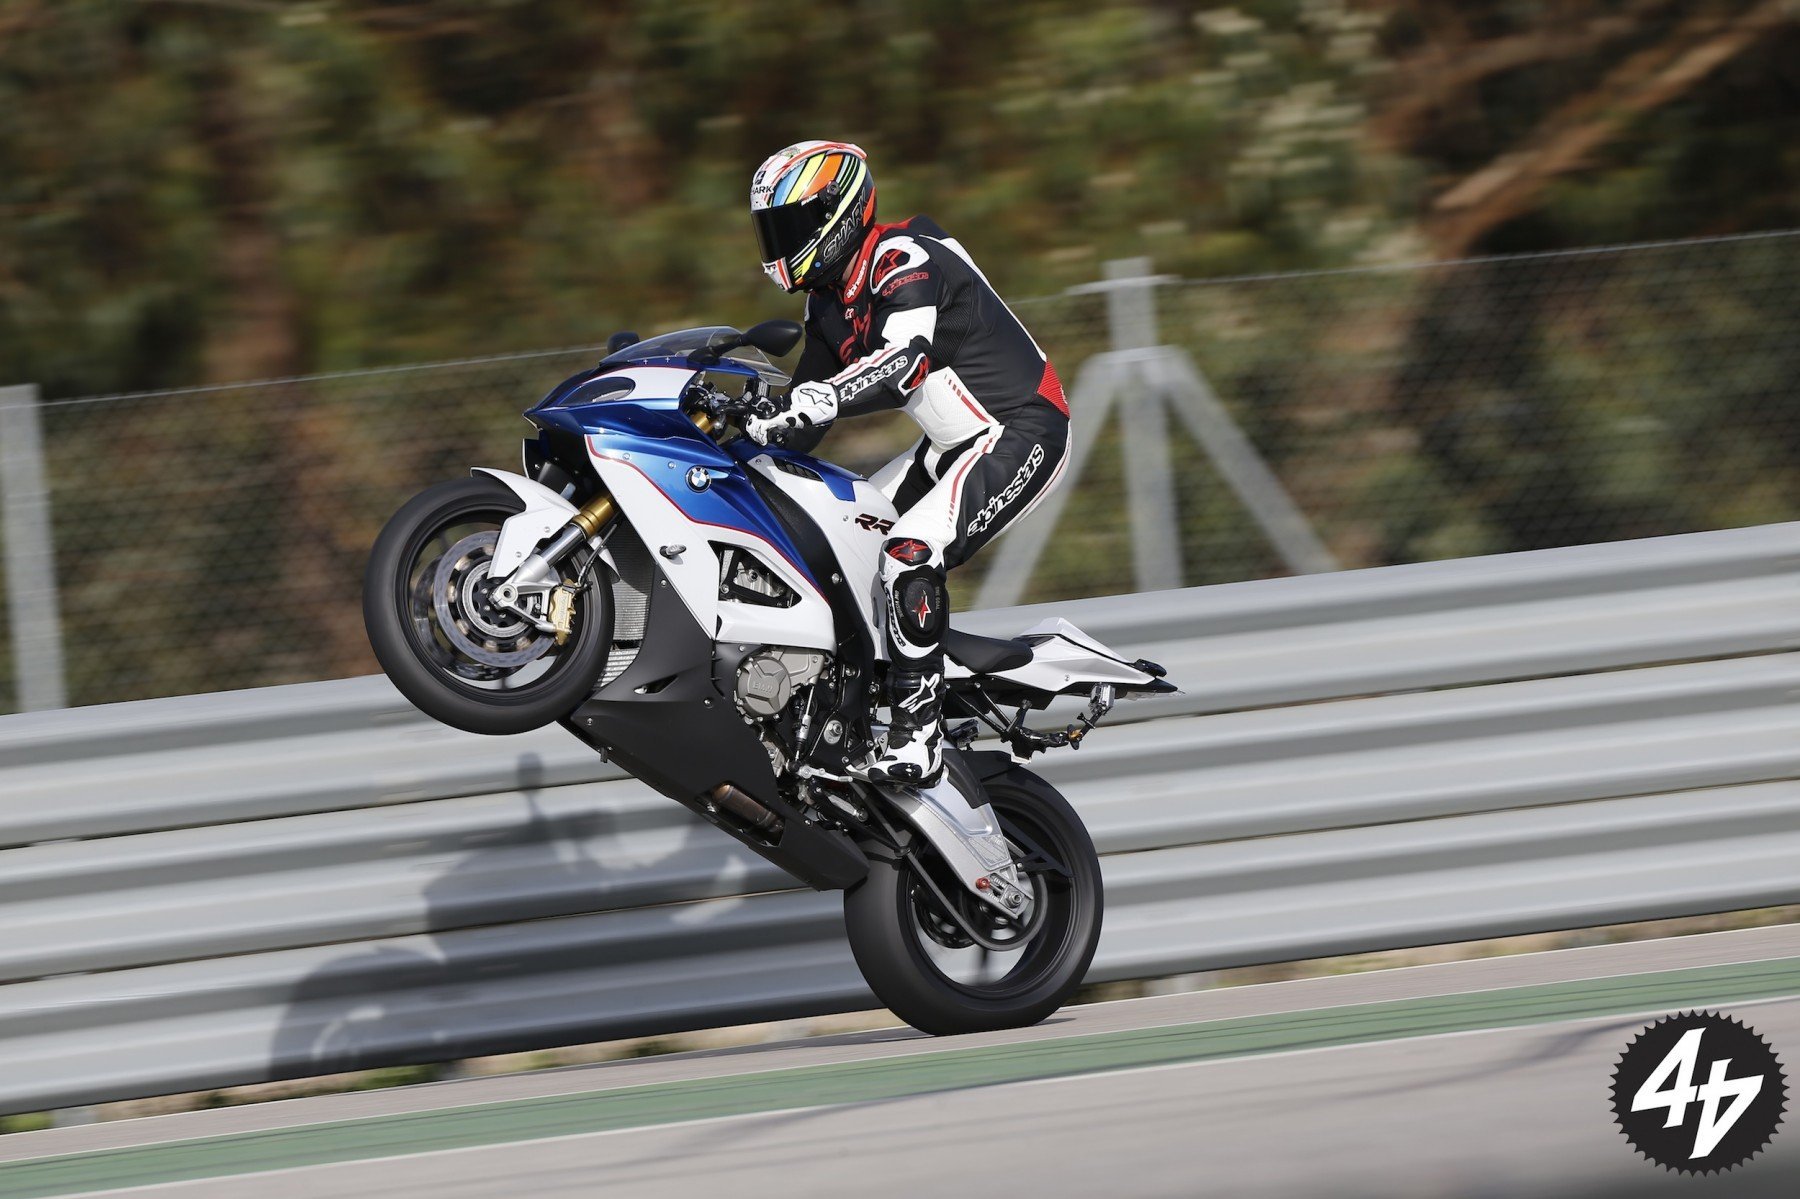 Want to know more about the 2015 BMW S 1000 RR?